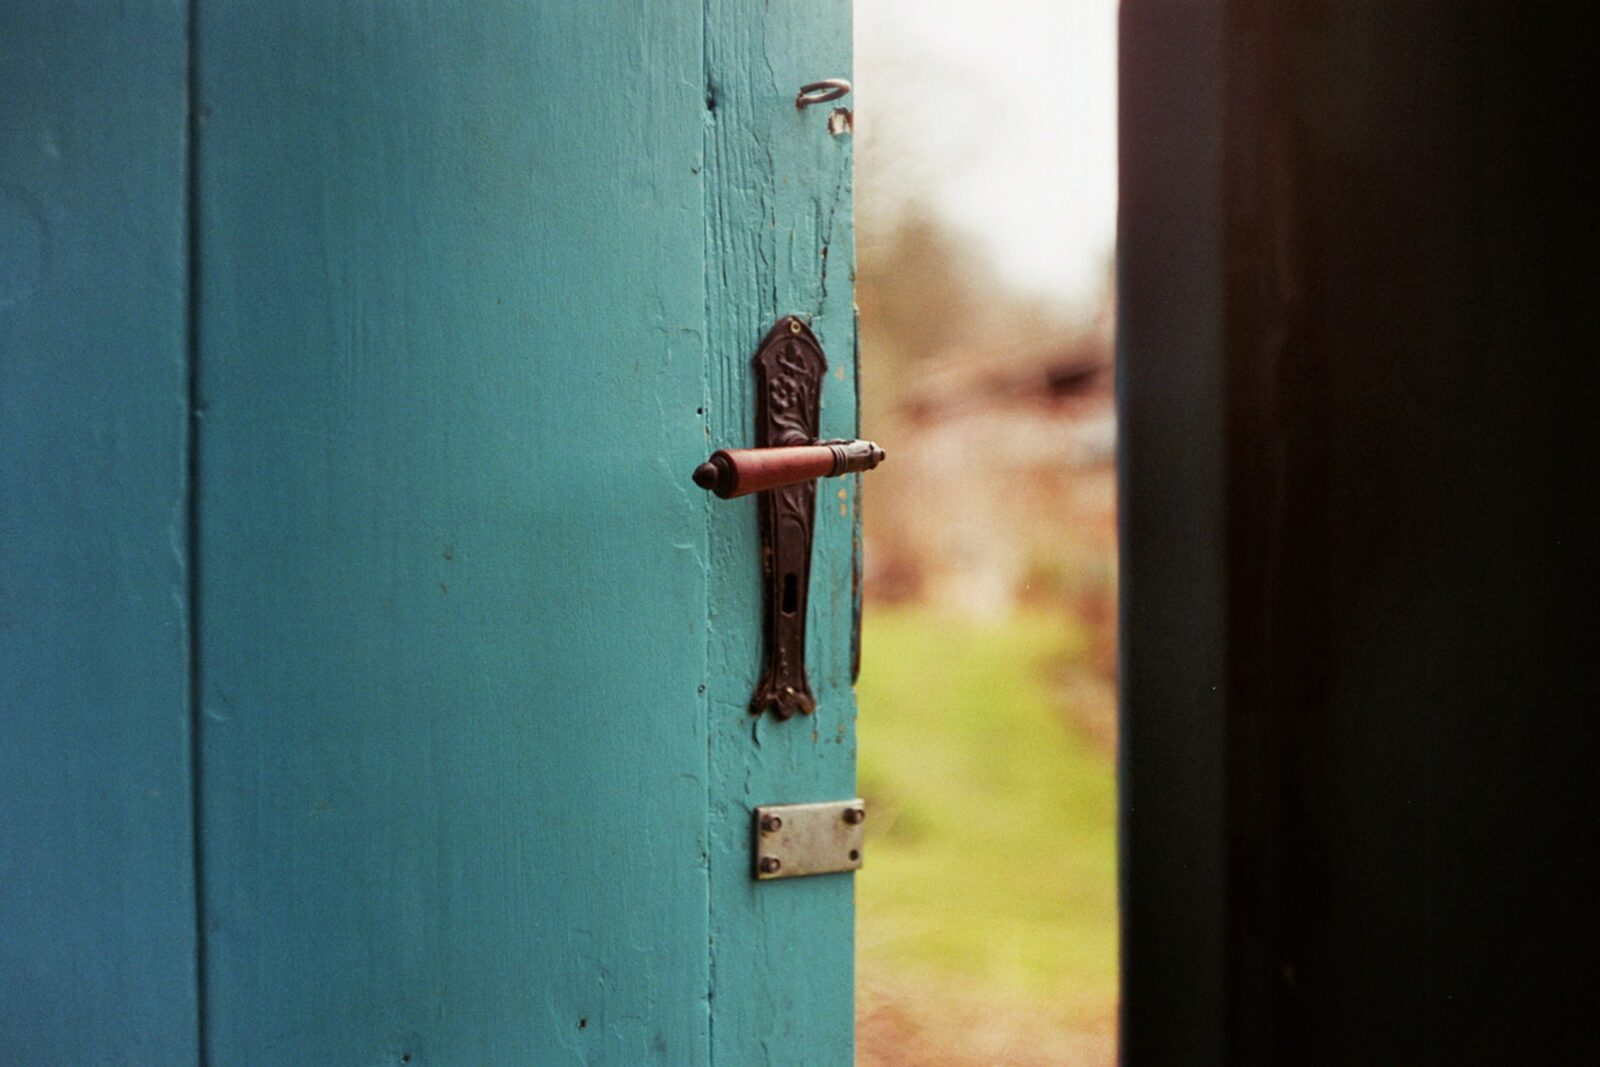 A blue door opening to the outside to demonstrate the endless opportunities that exist